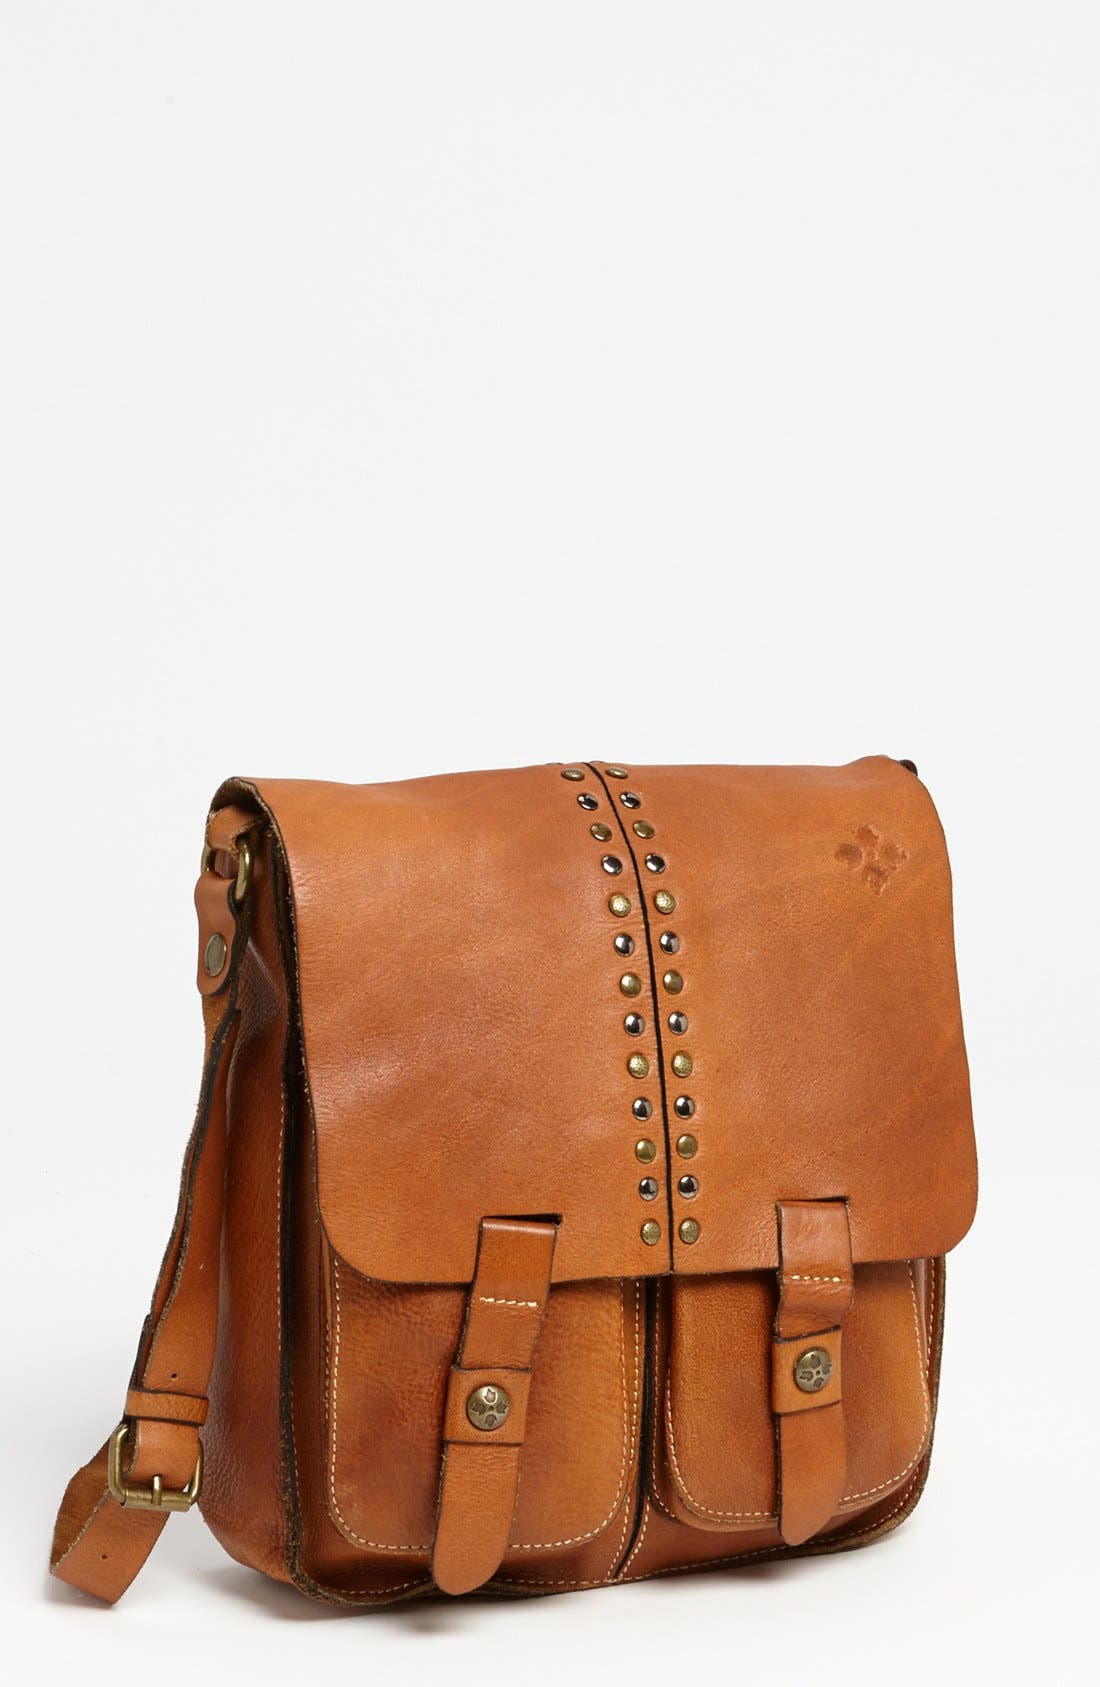 Alternate Image 1 Selected - Patricia Nash 'Armeno' Leather Messenger Bag